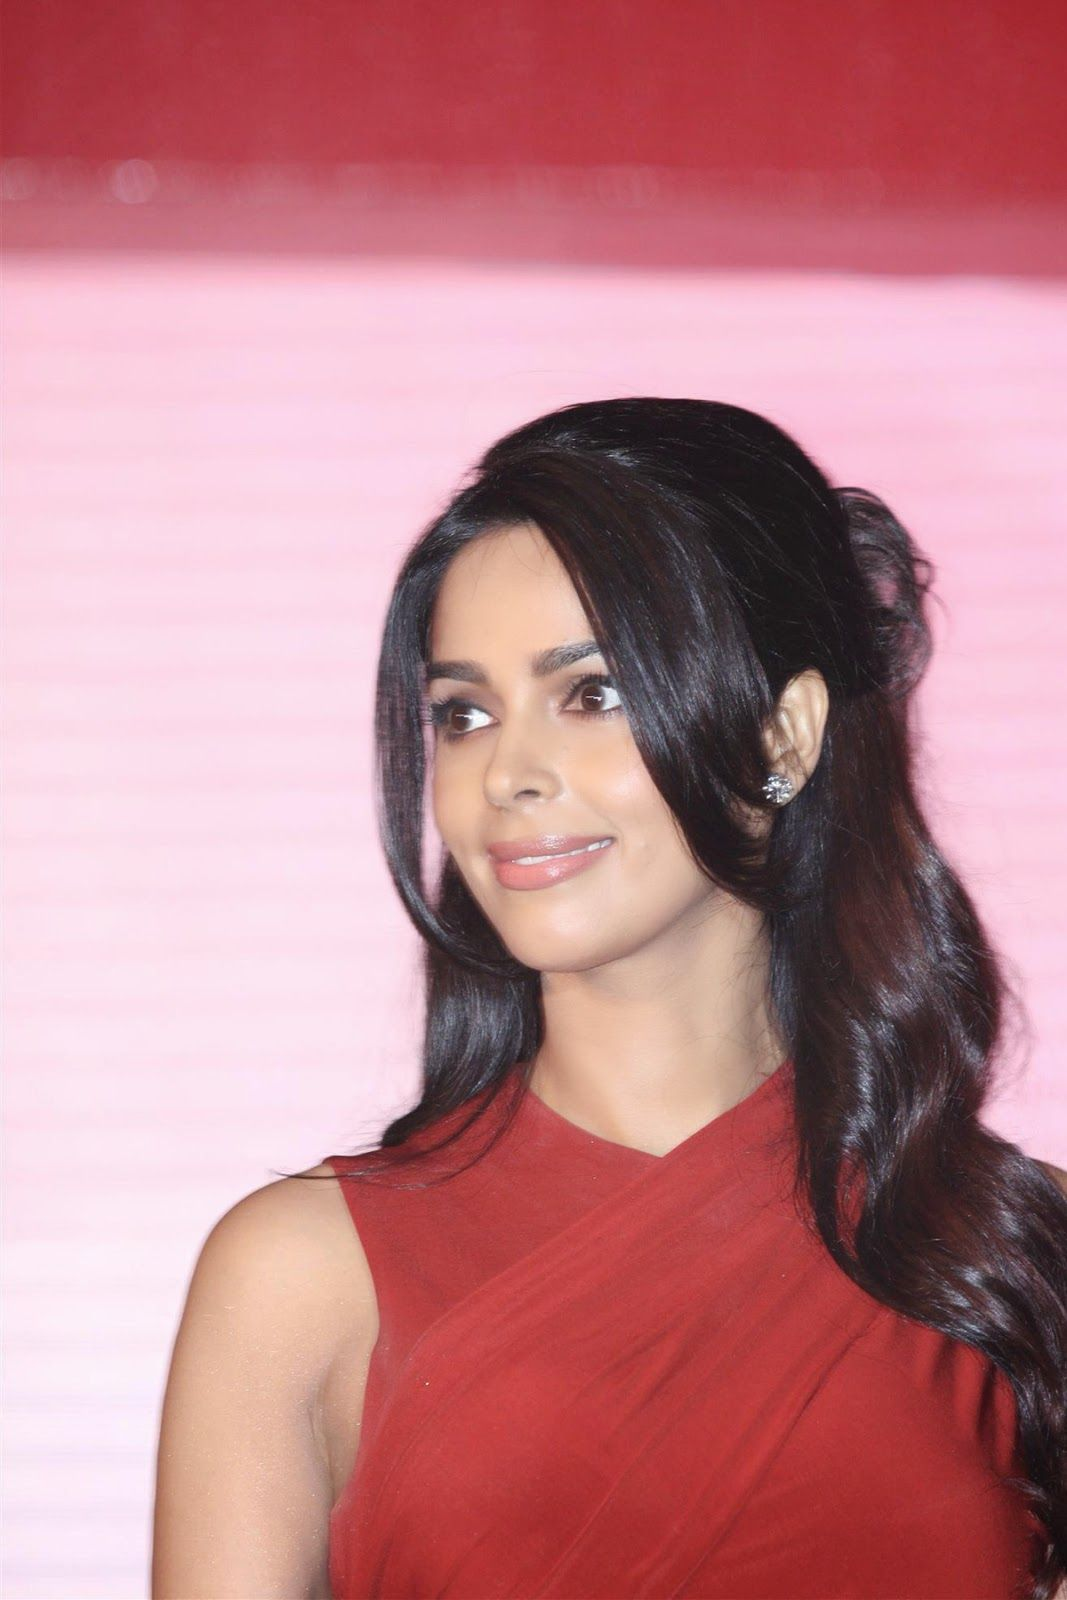 mallika sherawat beautiful hd wallpaper | wallpapers for desktop